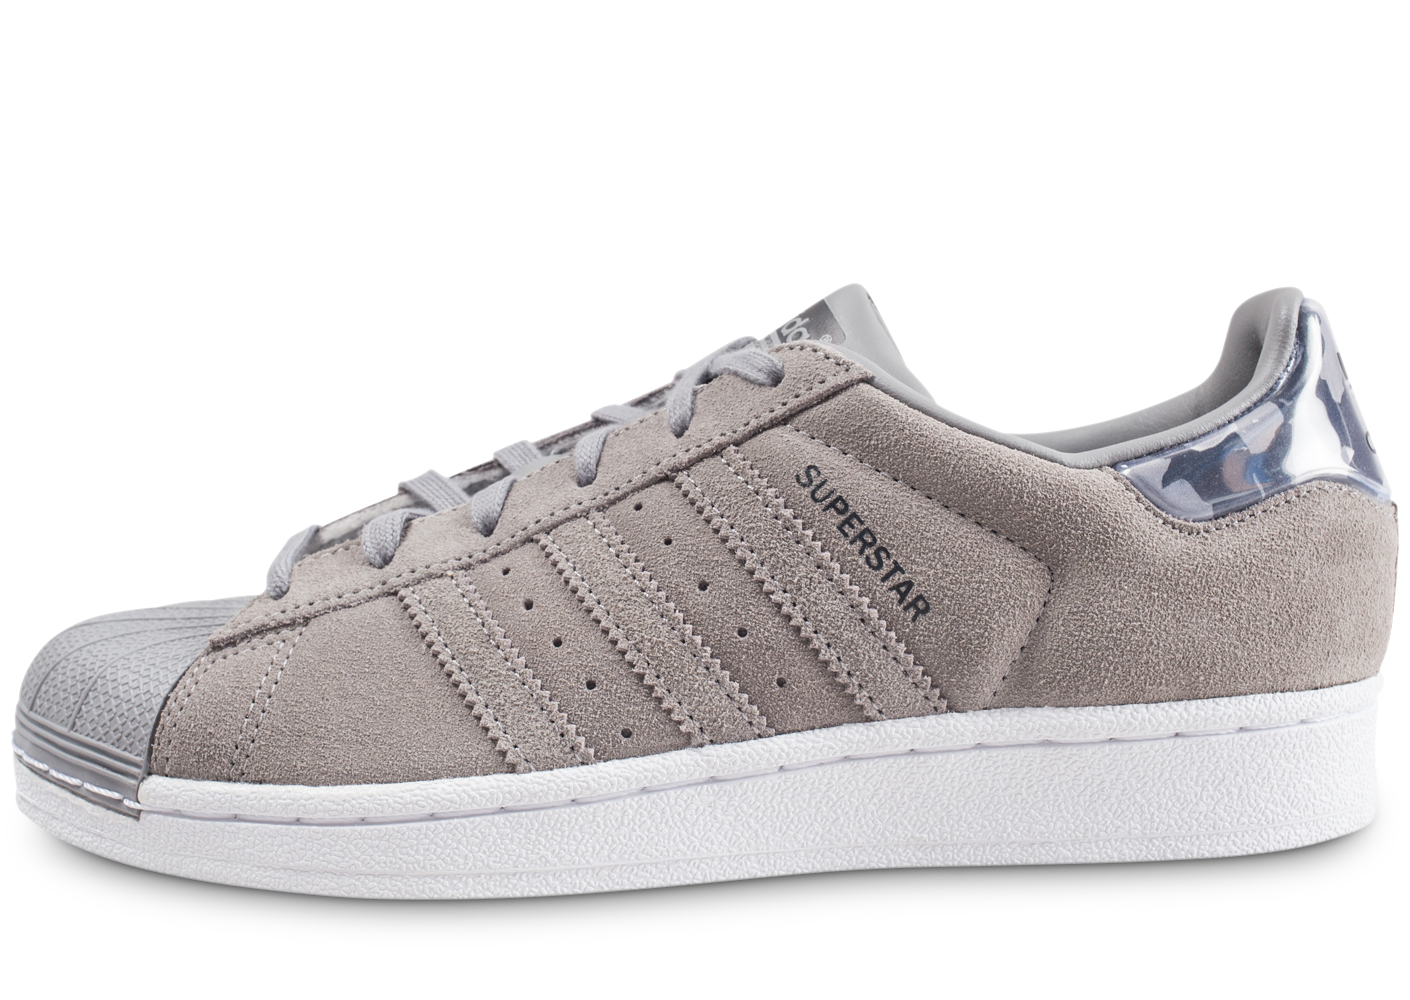 c3e139fd4827c Adidas enfant superstar beige camo junior baskets